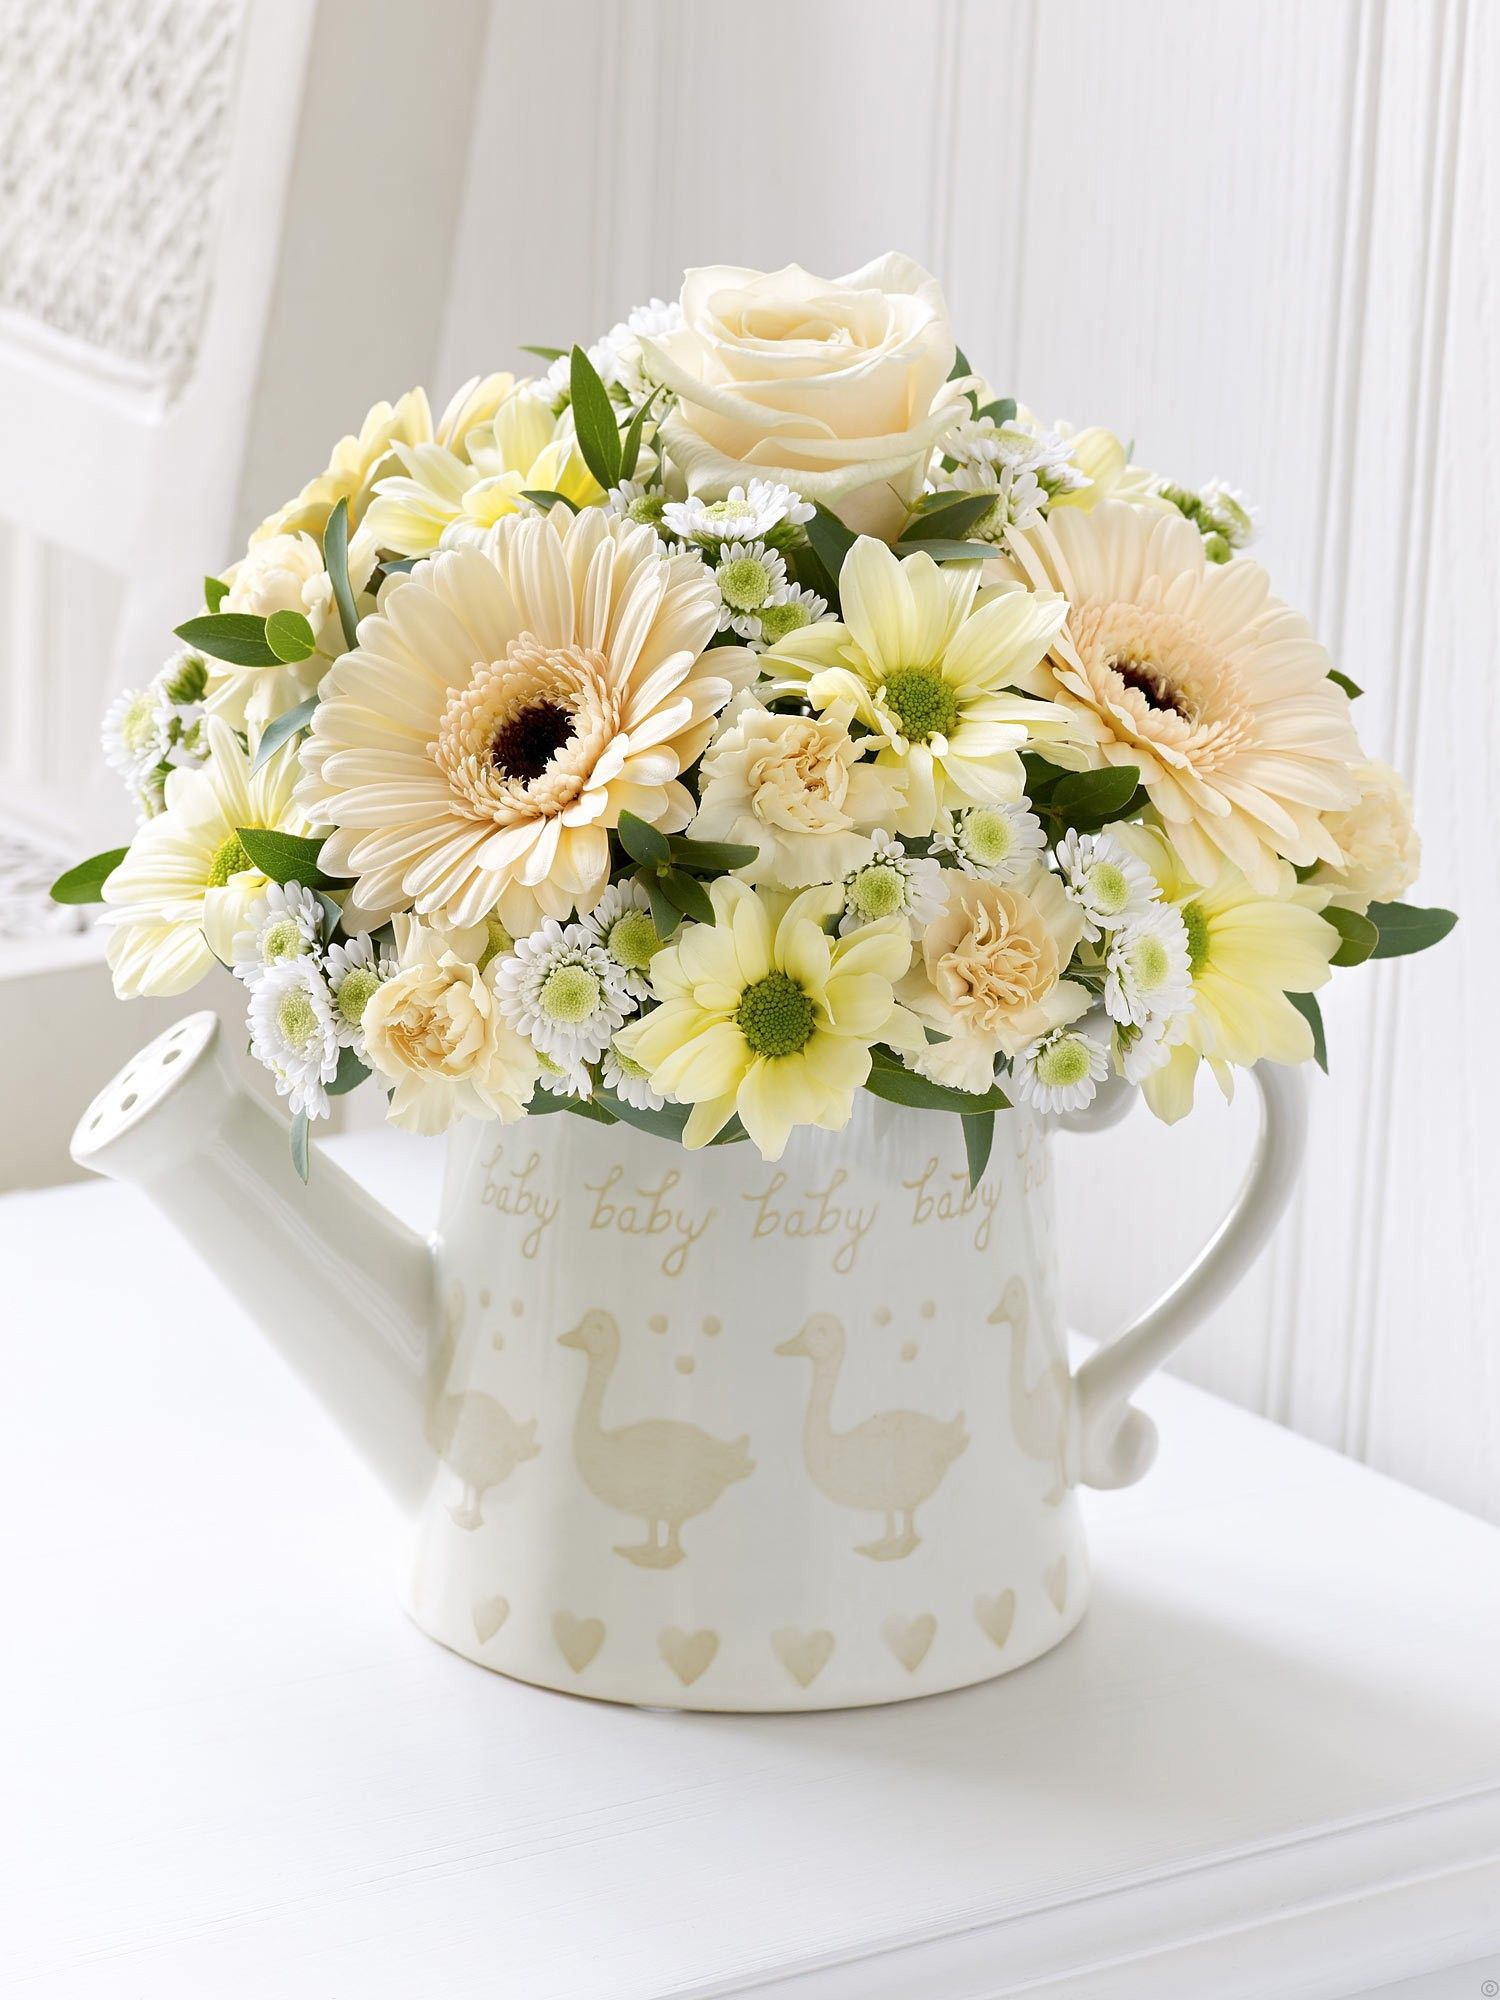 Perfect flowers for a new baby girl or boy in a cute duck